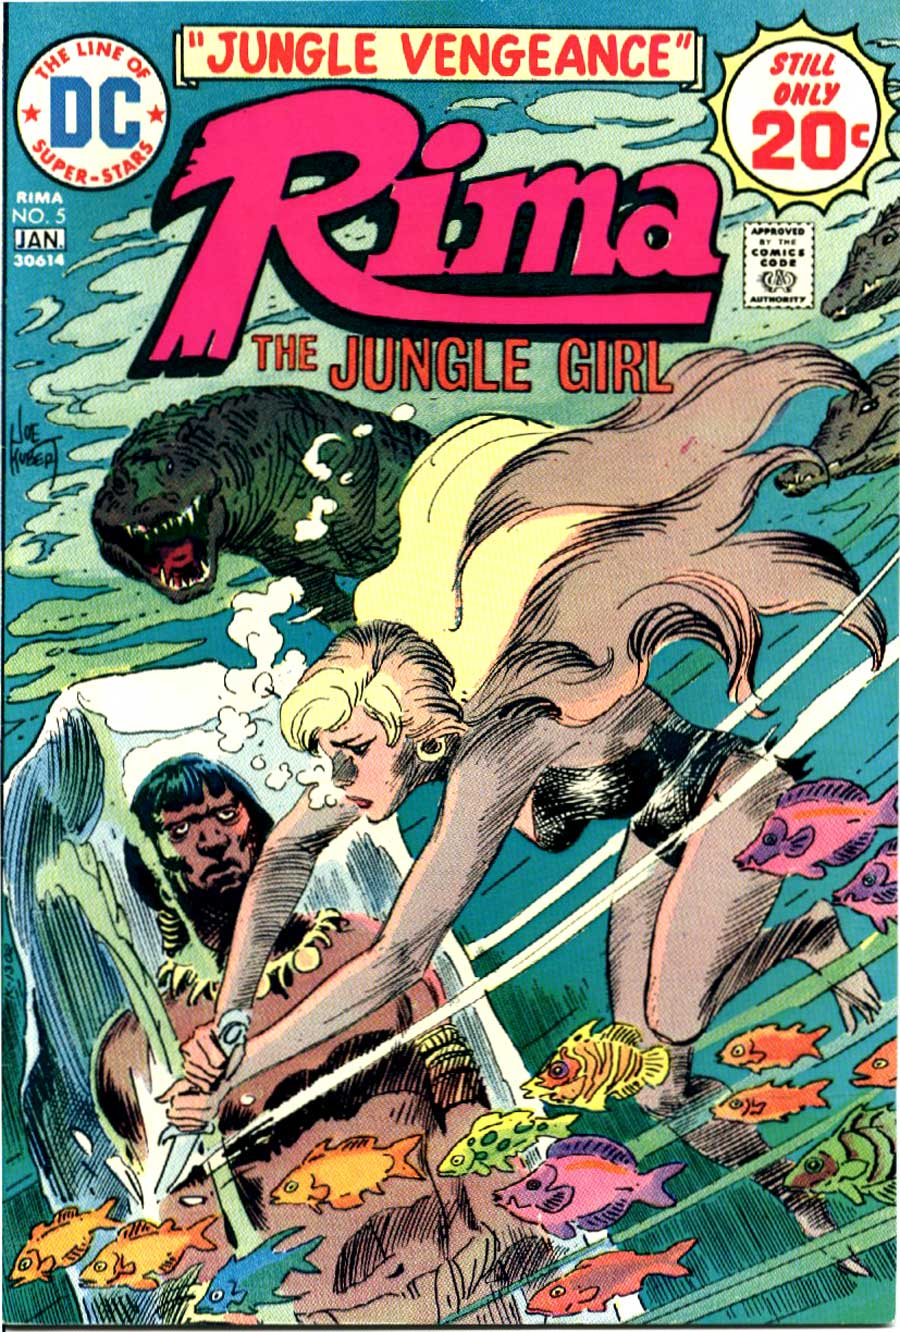 Rima the Jungle Girl v1 #5 dc bronze age comic book cover art by Joe Kubert